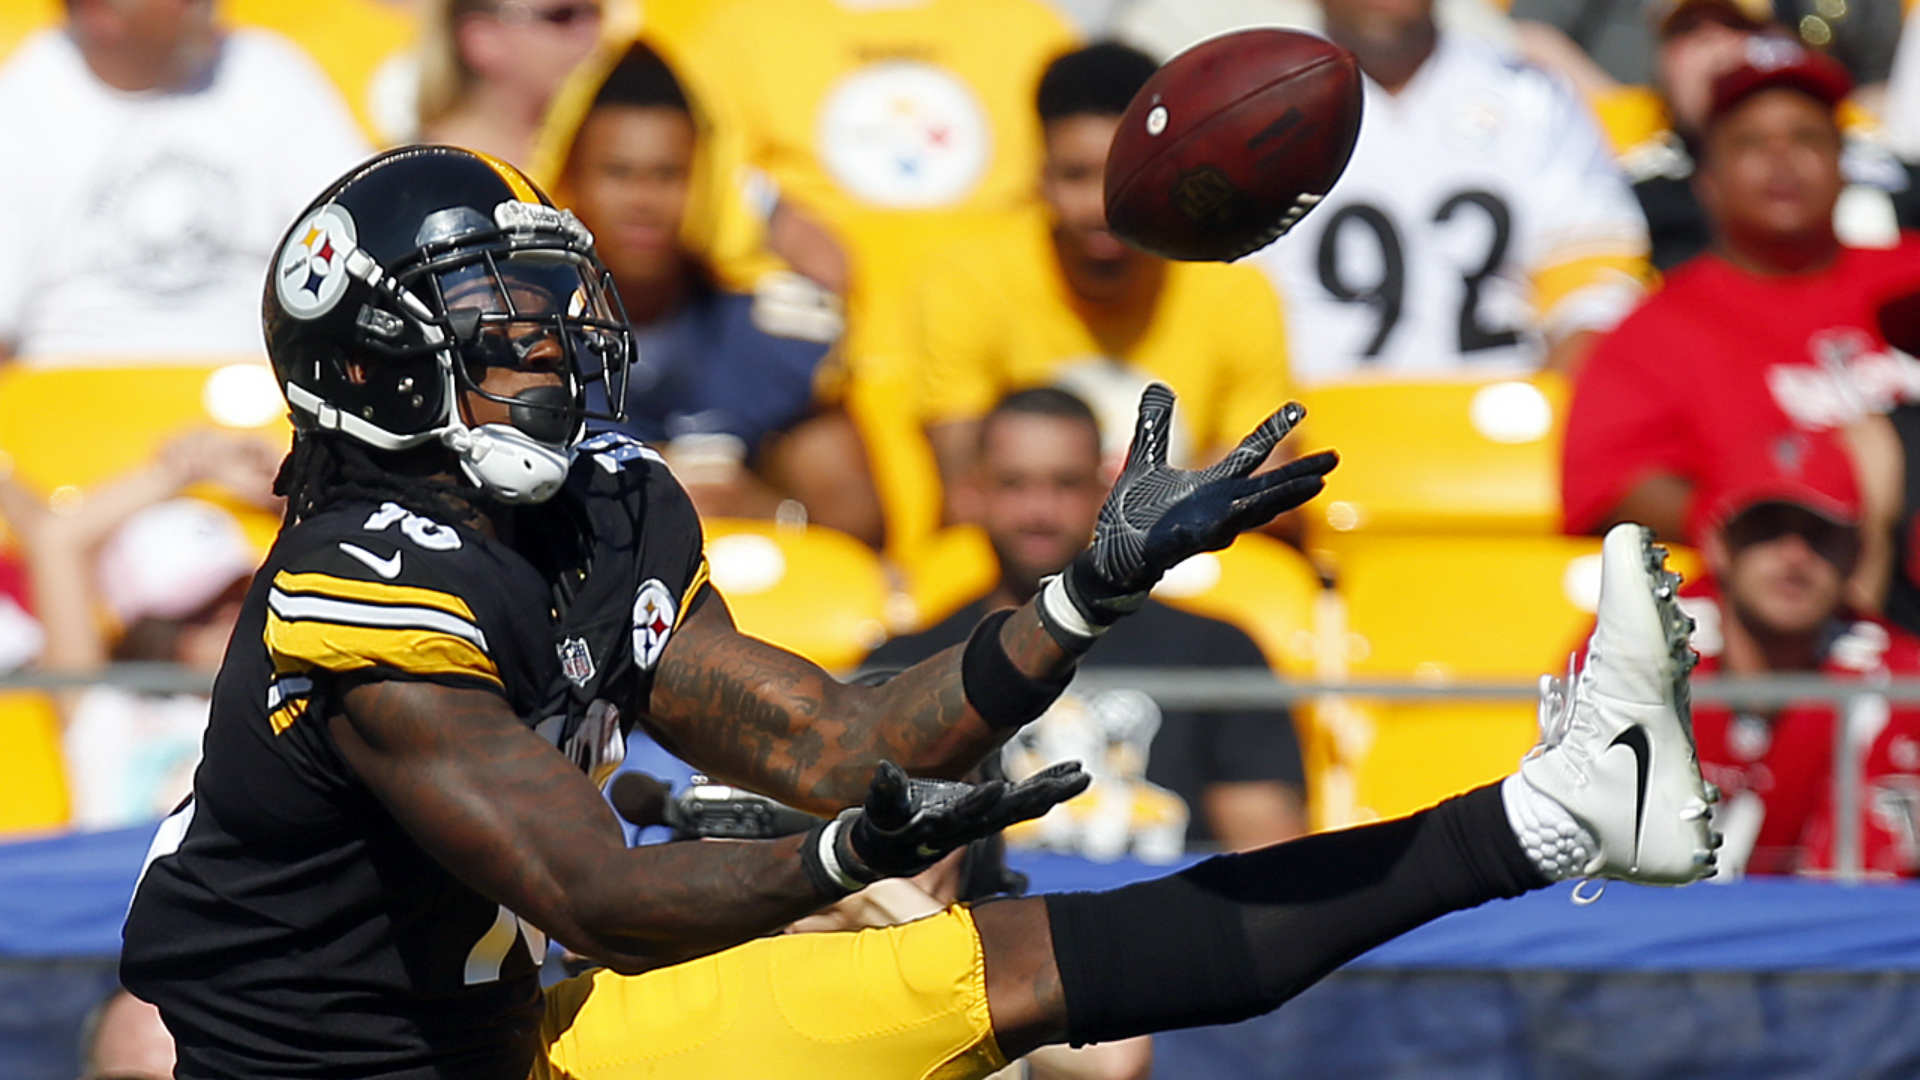 Steelers' Martavis Bryant cleared for regular season